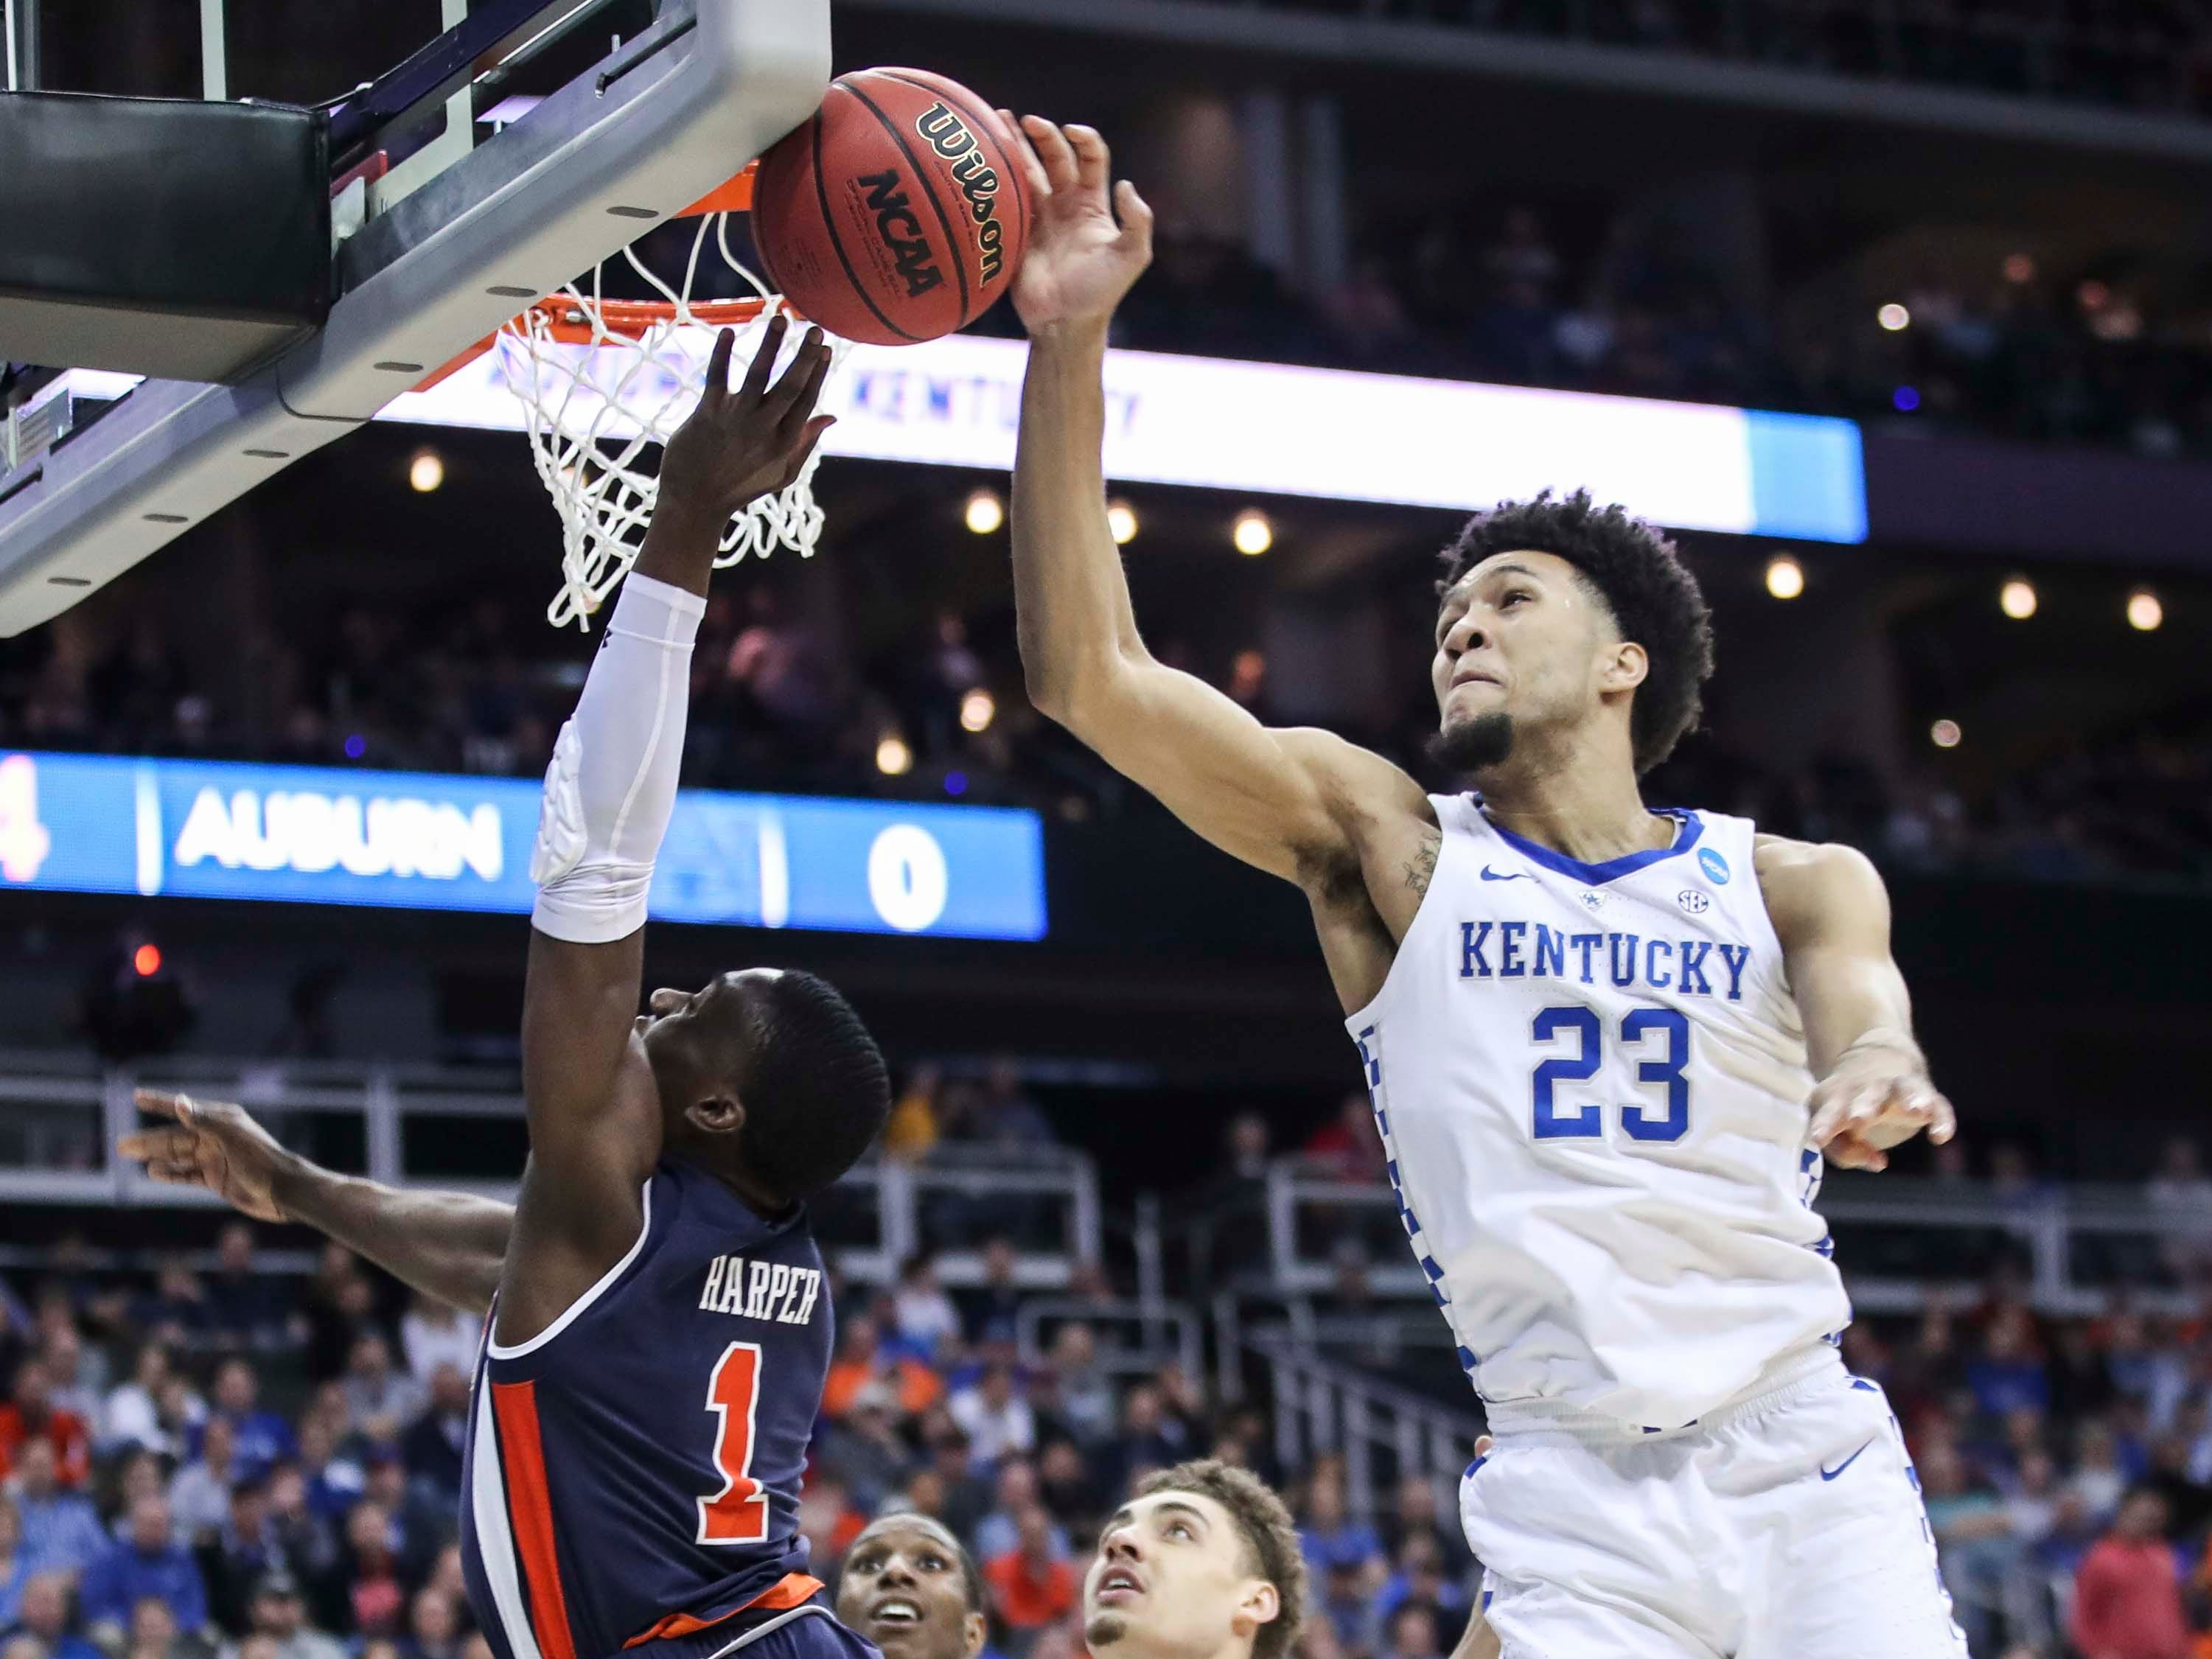 Kentucky's EJ Montgomery has this block early in the first half against Auburn Sunday aftermnoon in the Elite Eight. March 31, 2019